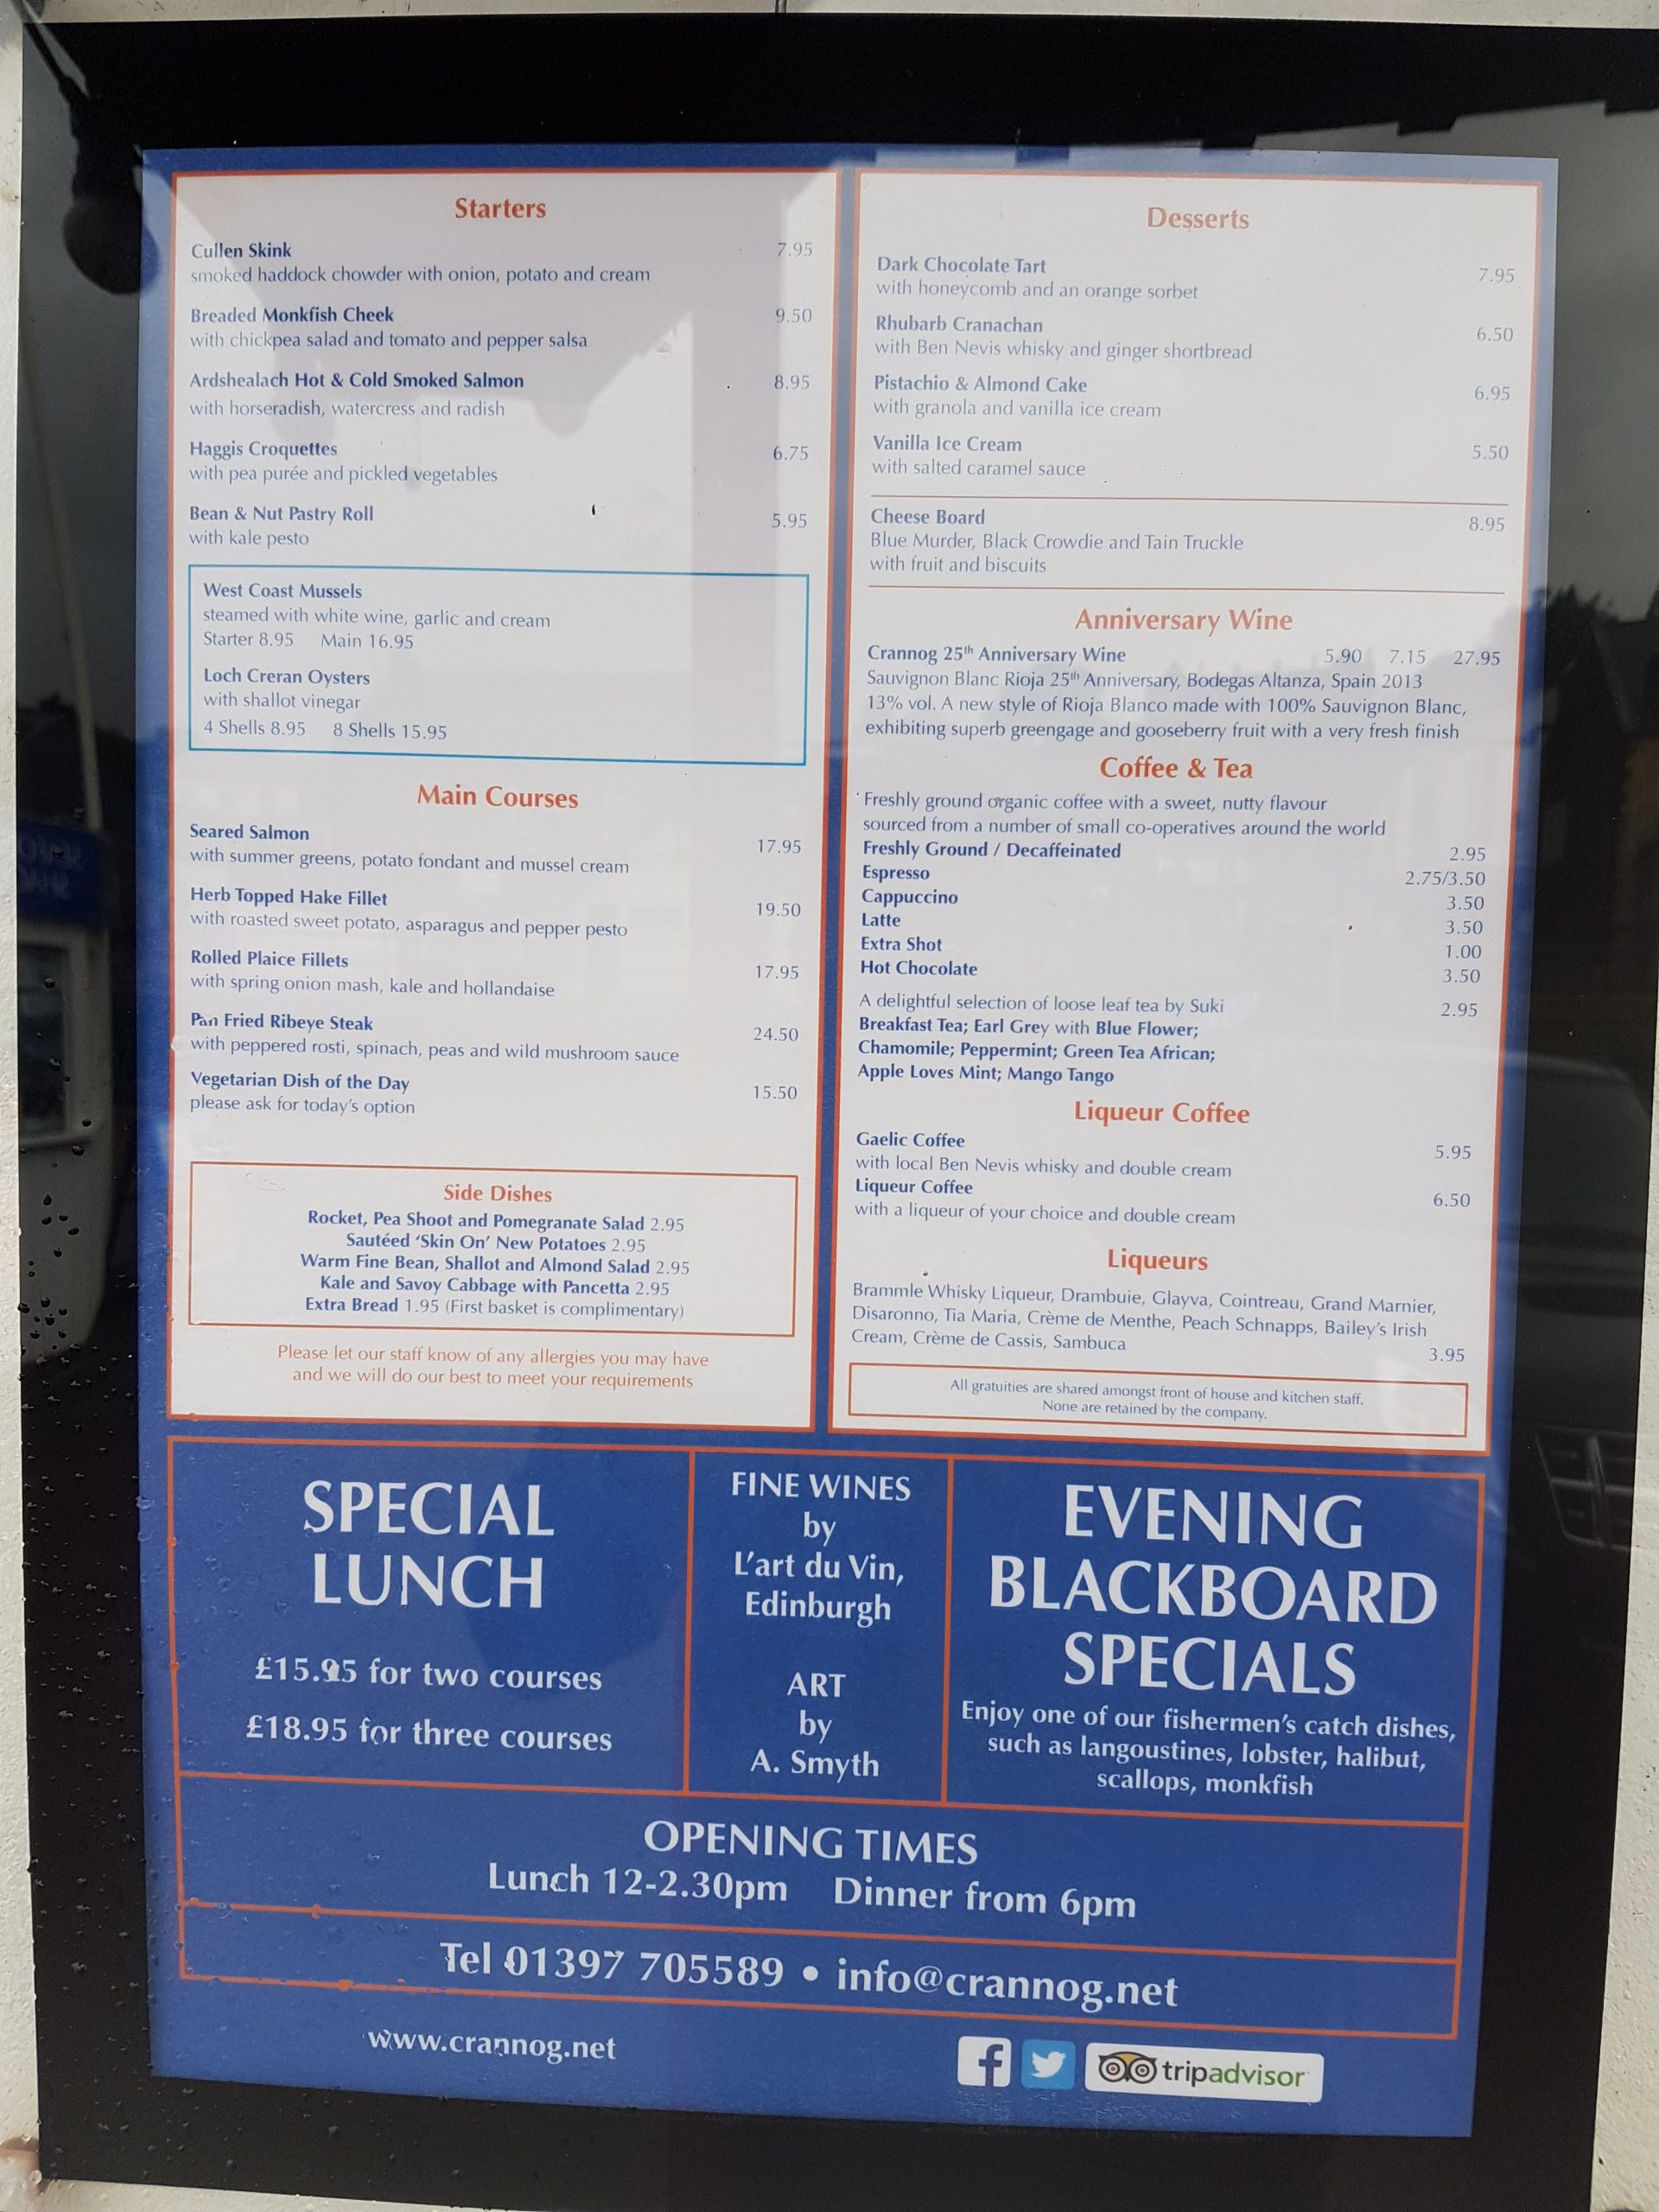 This is the Crannog Seafood Restaurant menu